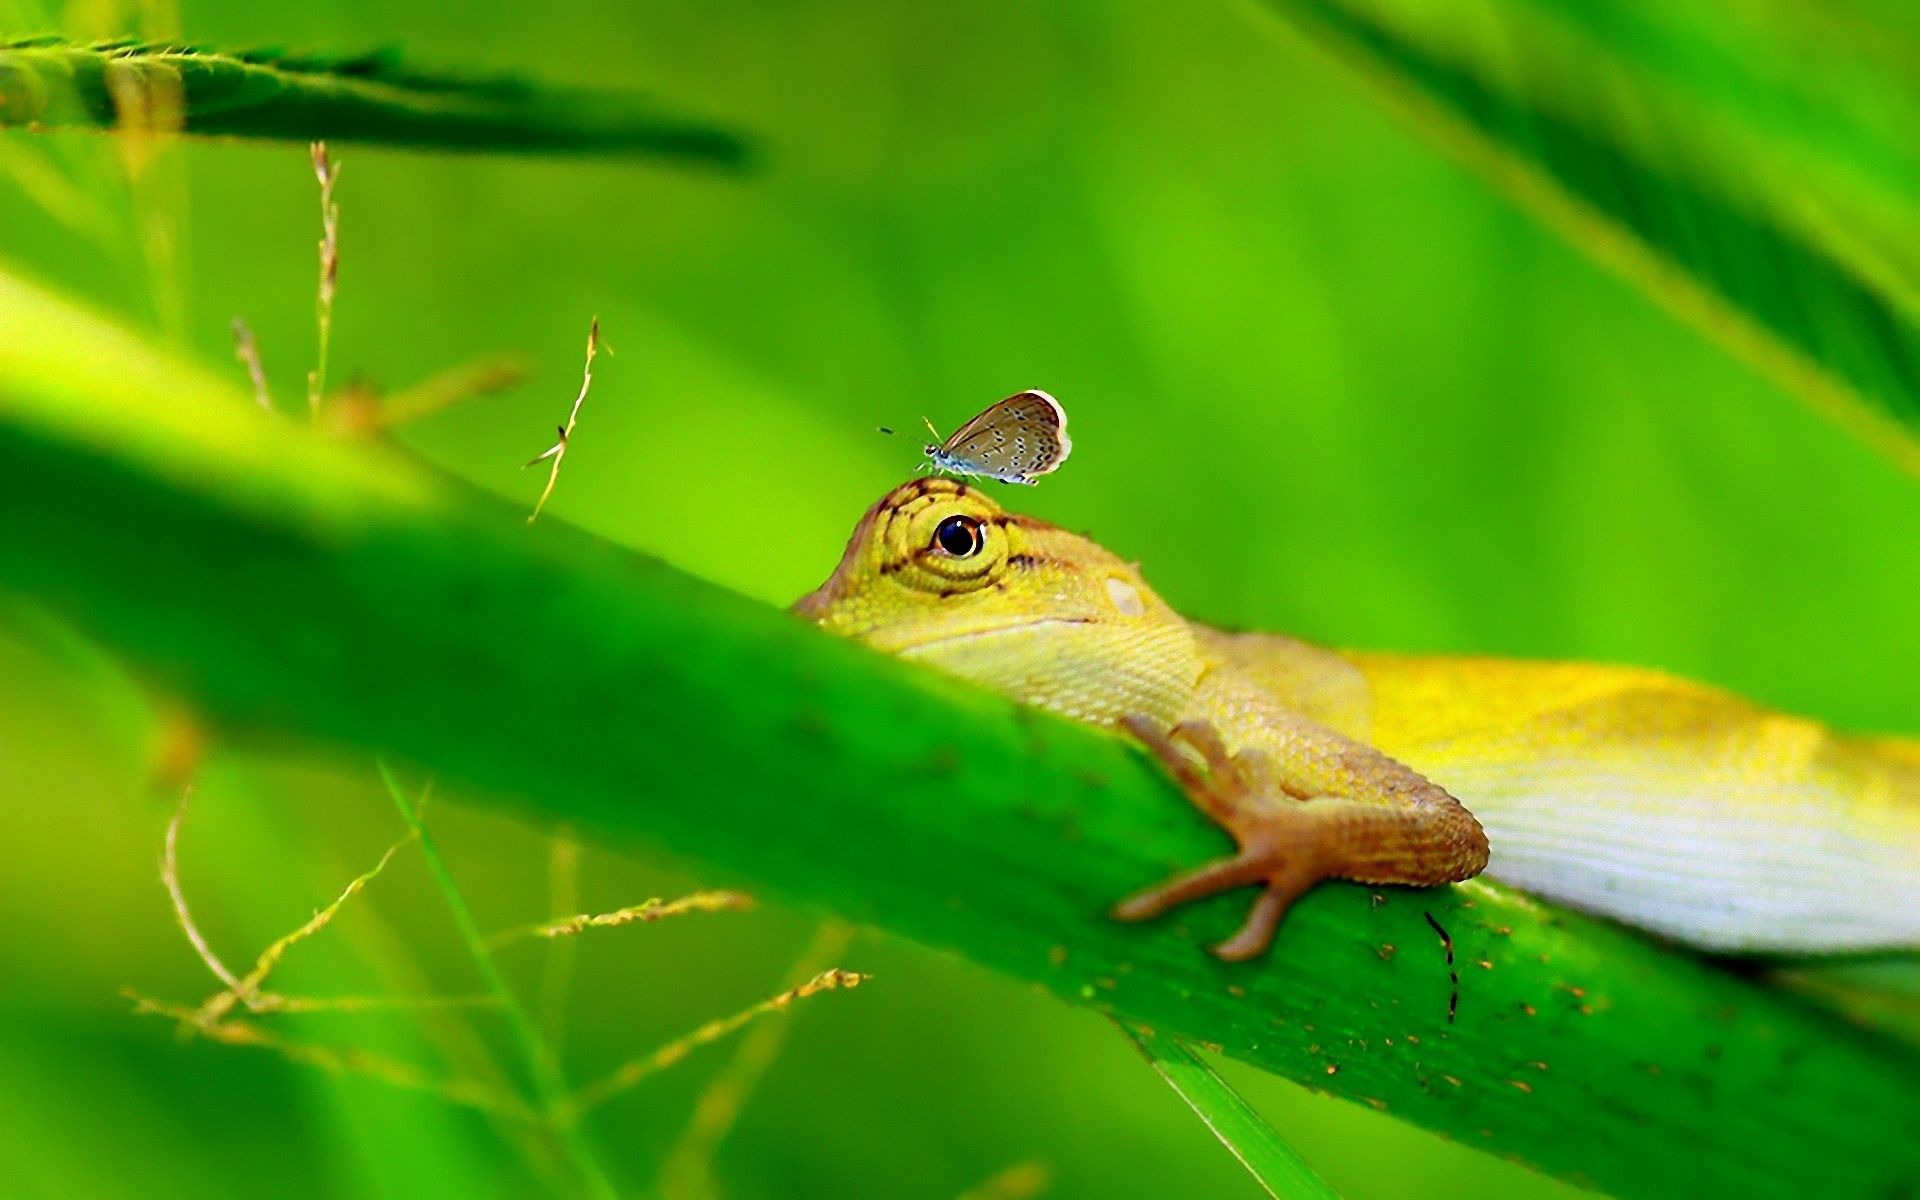 147871 download wallpaper Animals, Lizard, Grass, Paw screensavers and pictures for free